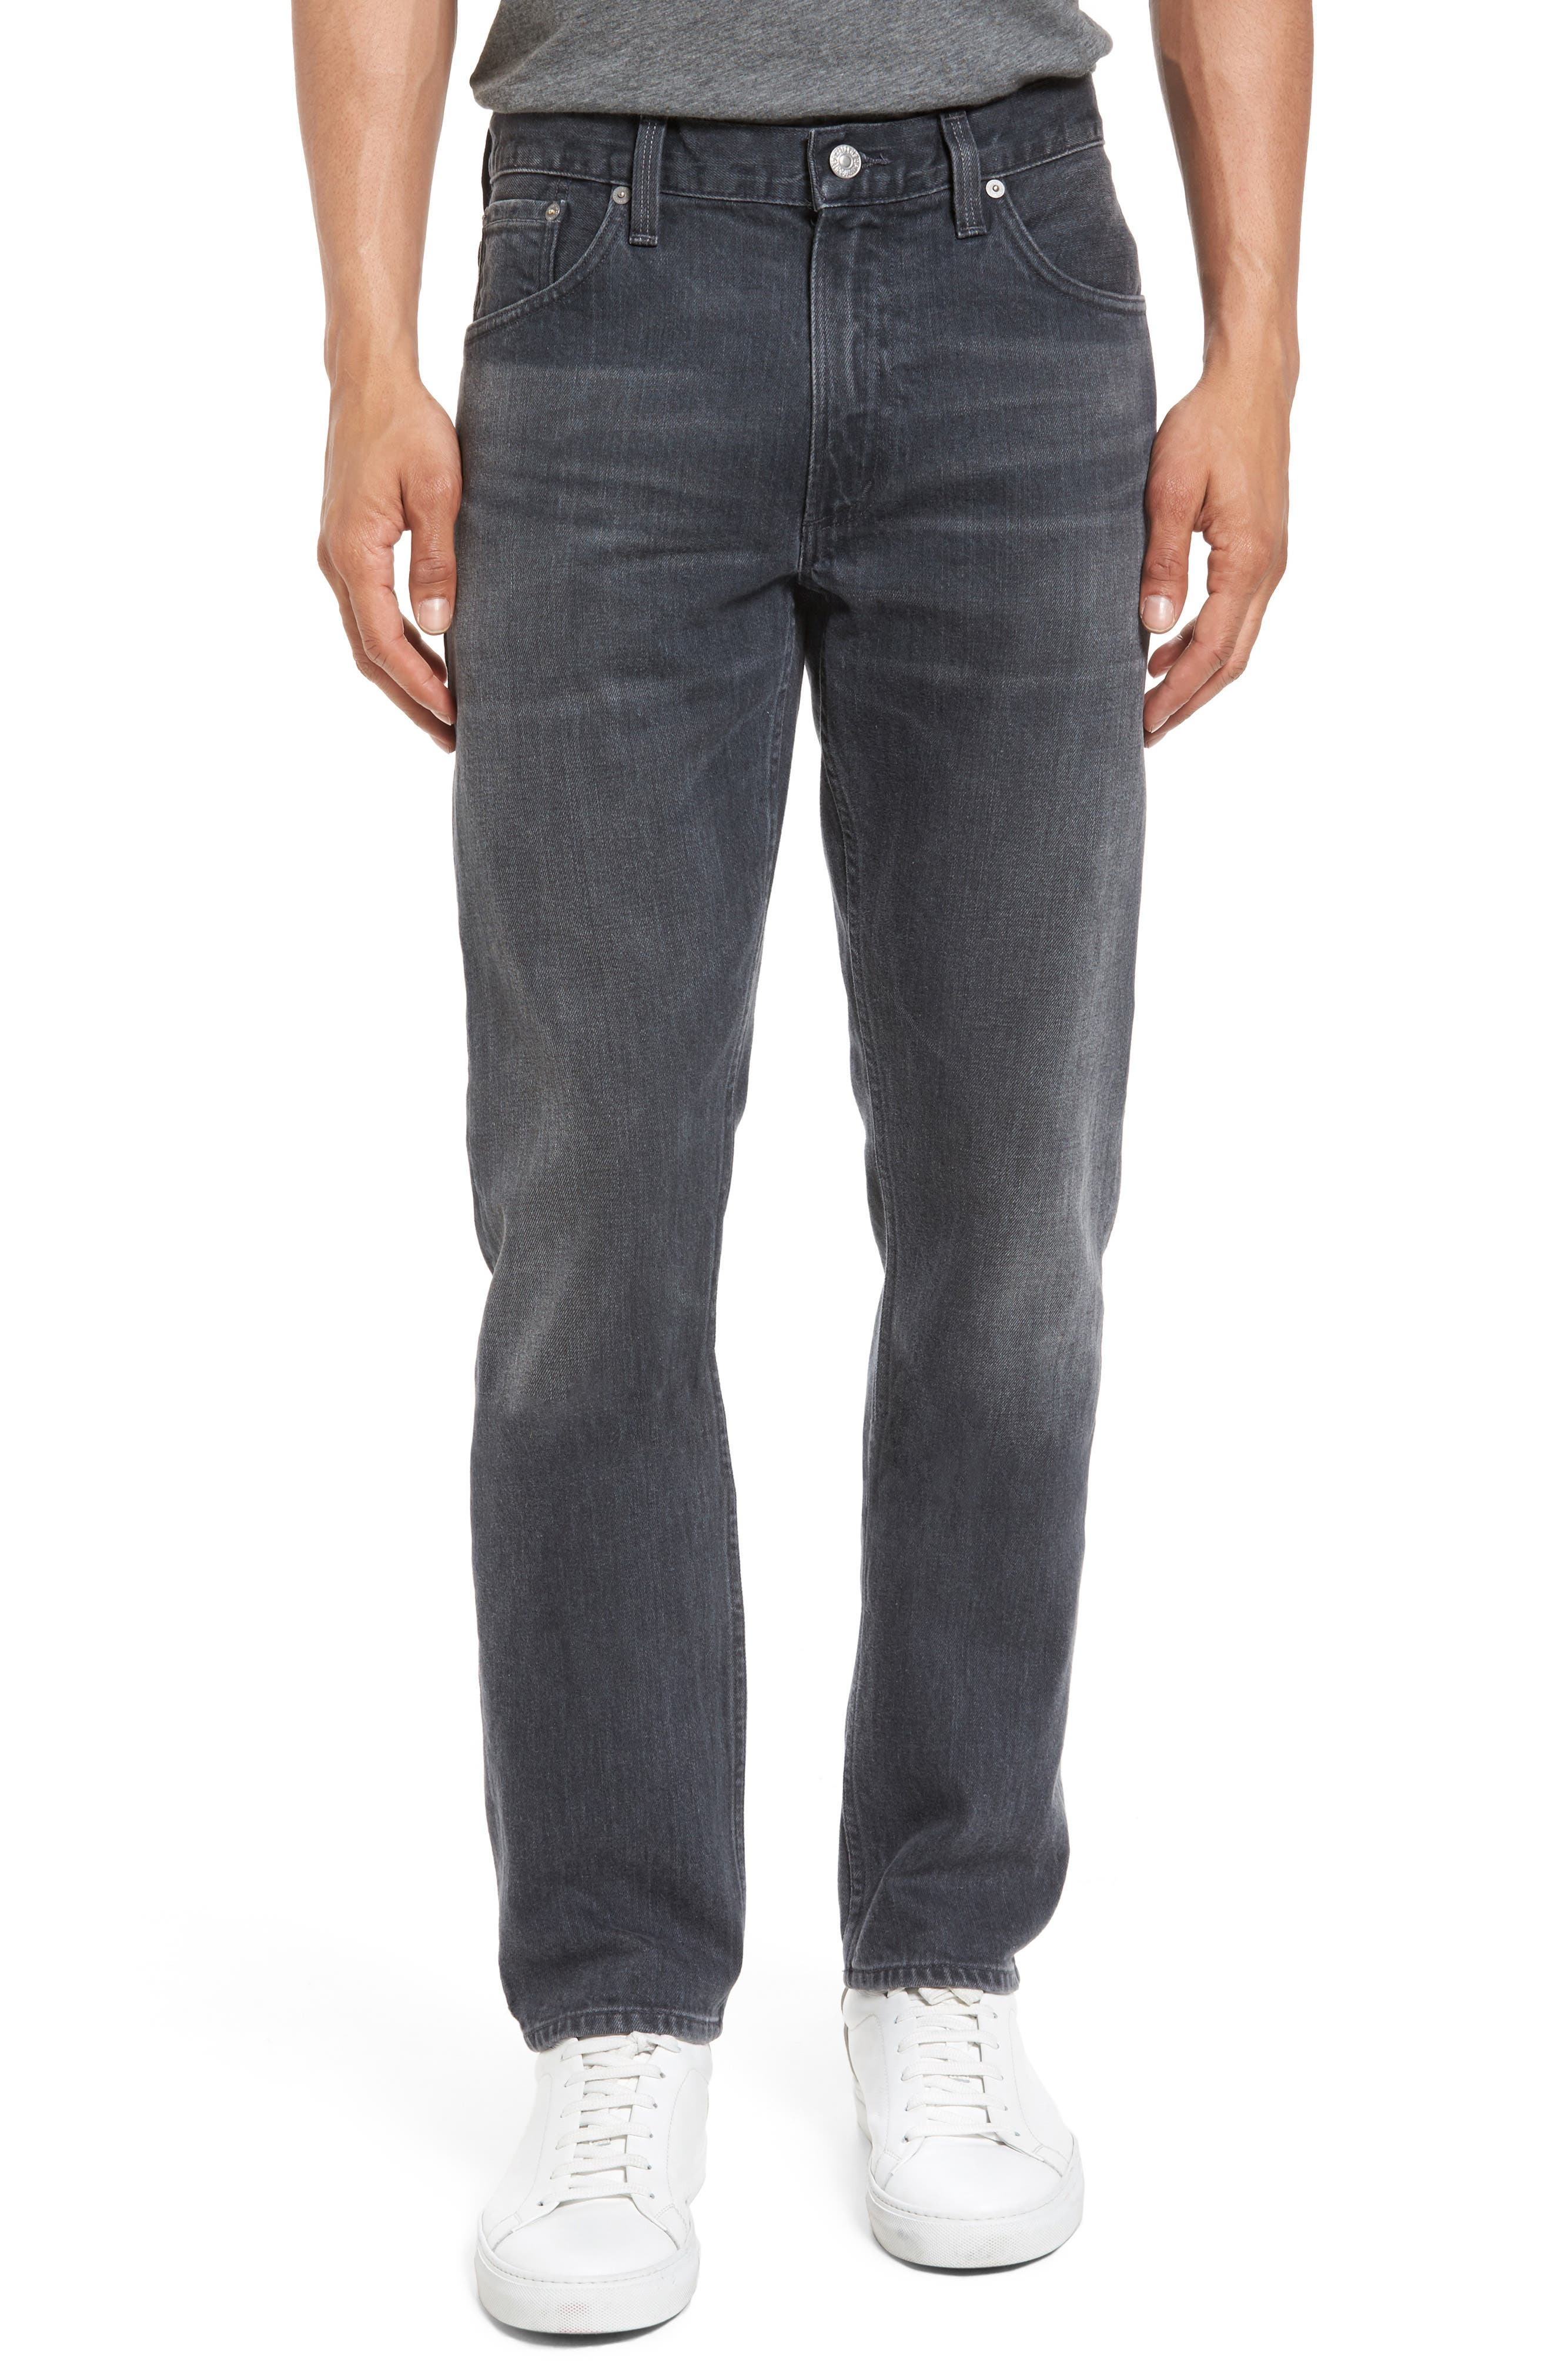 Bowery Slim Fit Jeans,                         Main,                         color, 022